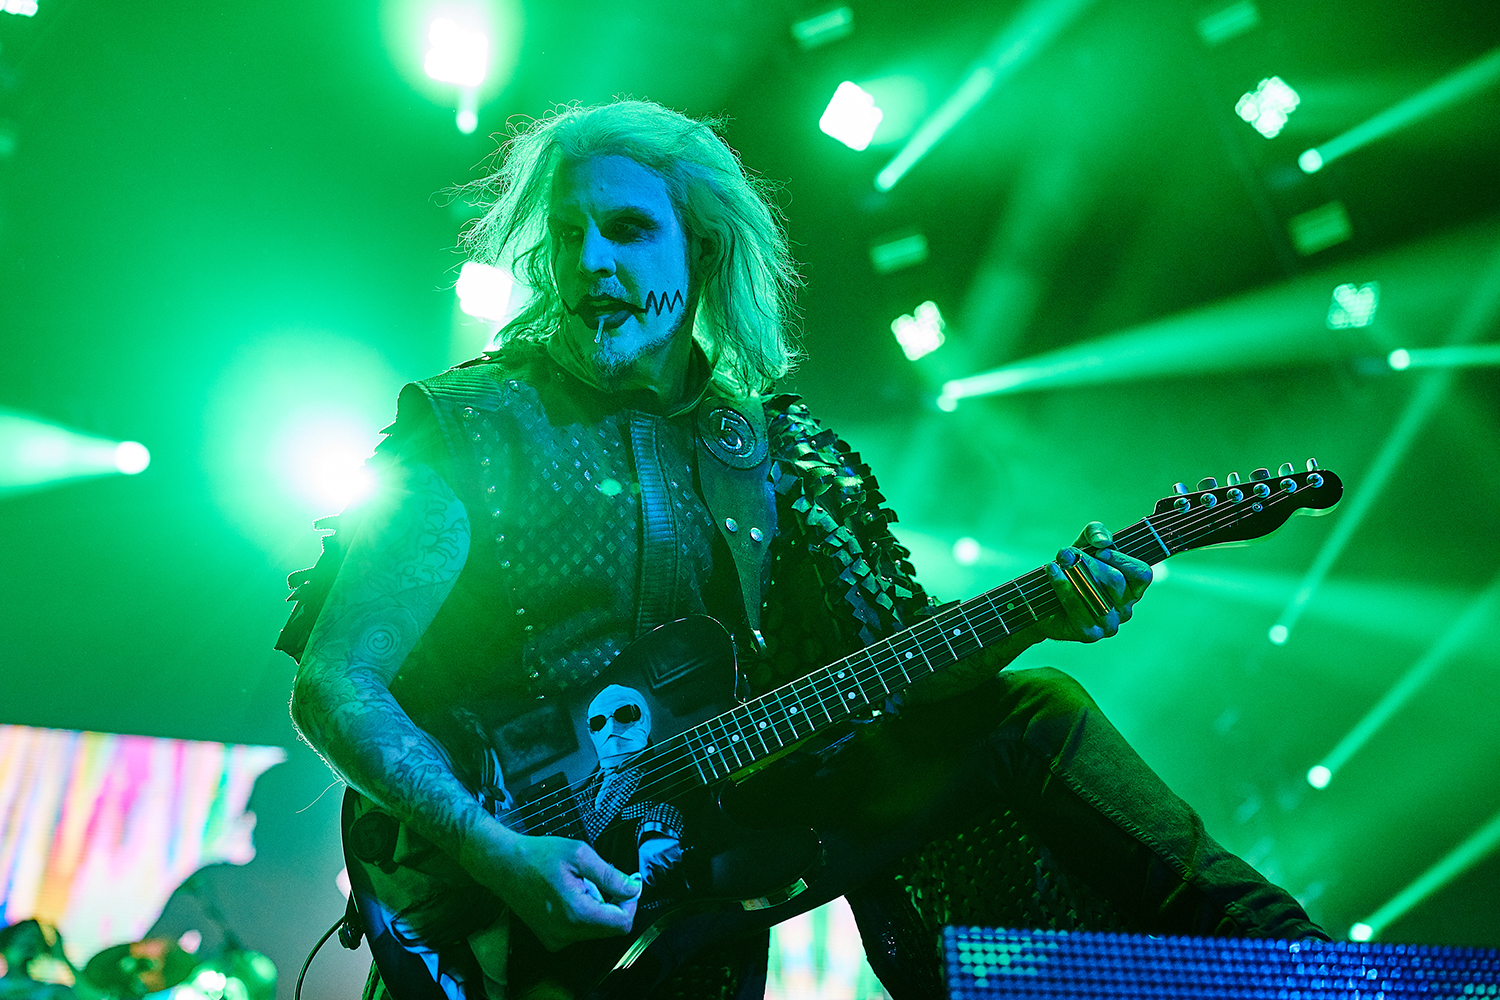 Rob Zombie's guitarist John 5 performs during a concert as part of the Twins of Evil Tour at the US Cellular Center in Cedar Rapids on Saturday, Aug. 10, 2019.